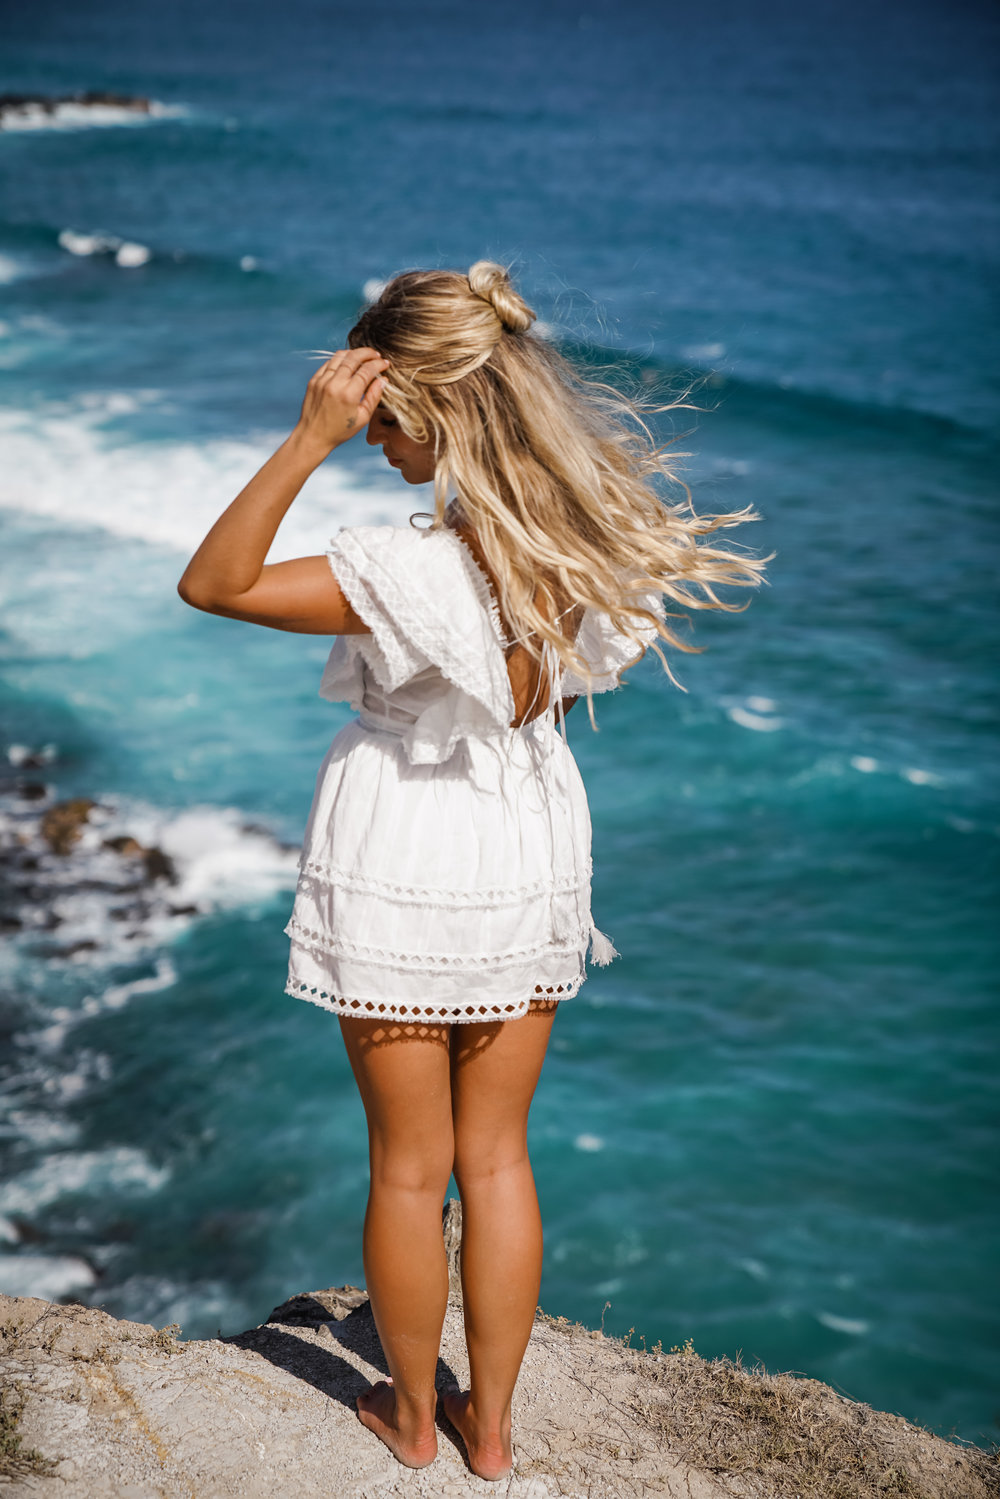 Photos by Kat Reynolds Sabo Skirt Dress | Koa Shop Top, GRLFRND Skirt via Revolve, CJxMA Island Earrings | Gooseberry Seaside Bikini| Lovers + Friends Dress via Revolve | Majorelle Dress via Revolve | Gooseberry Seaside Suit | SIR The Label Dress